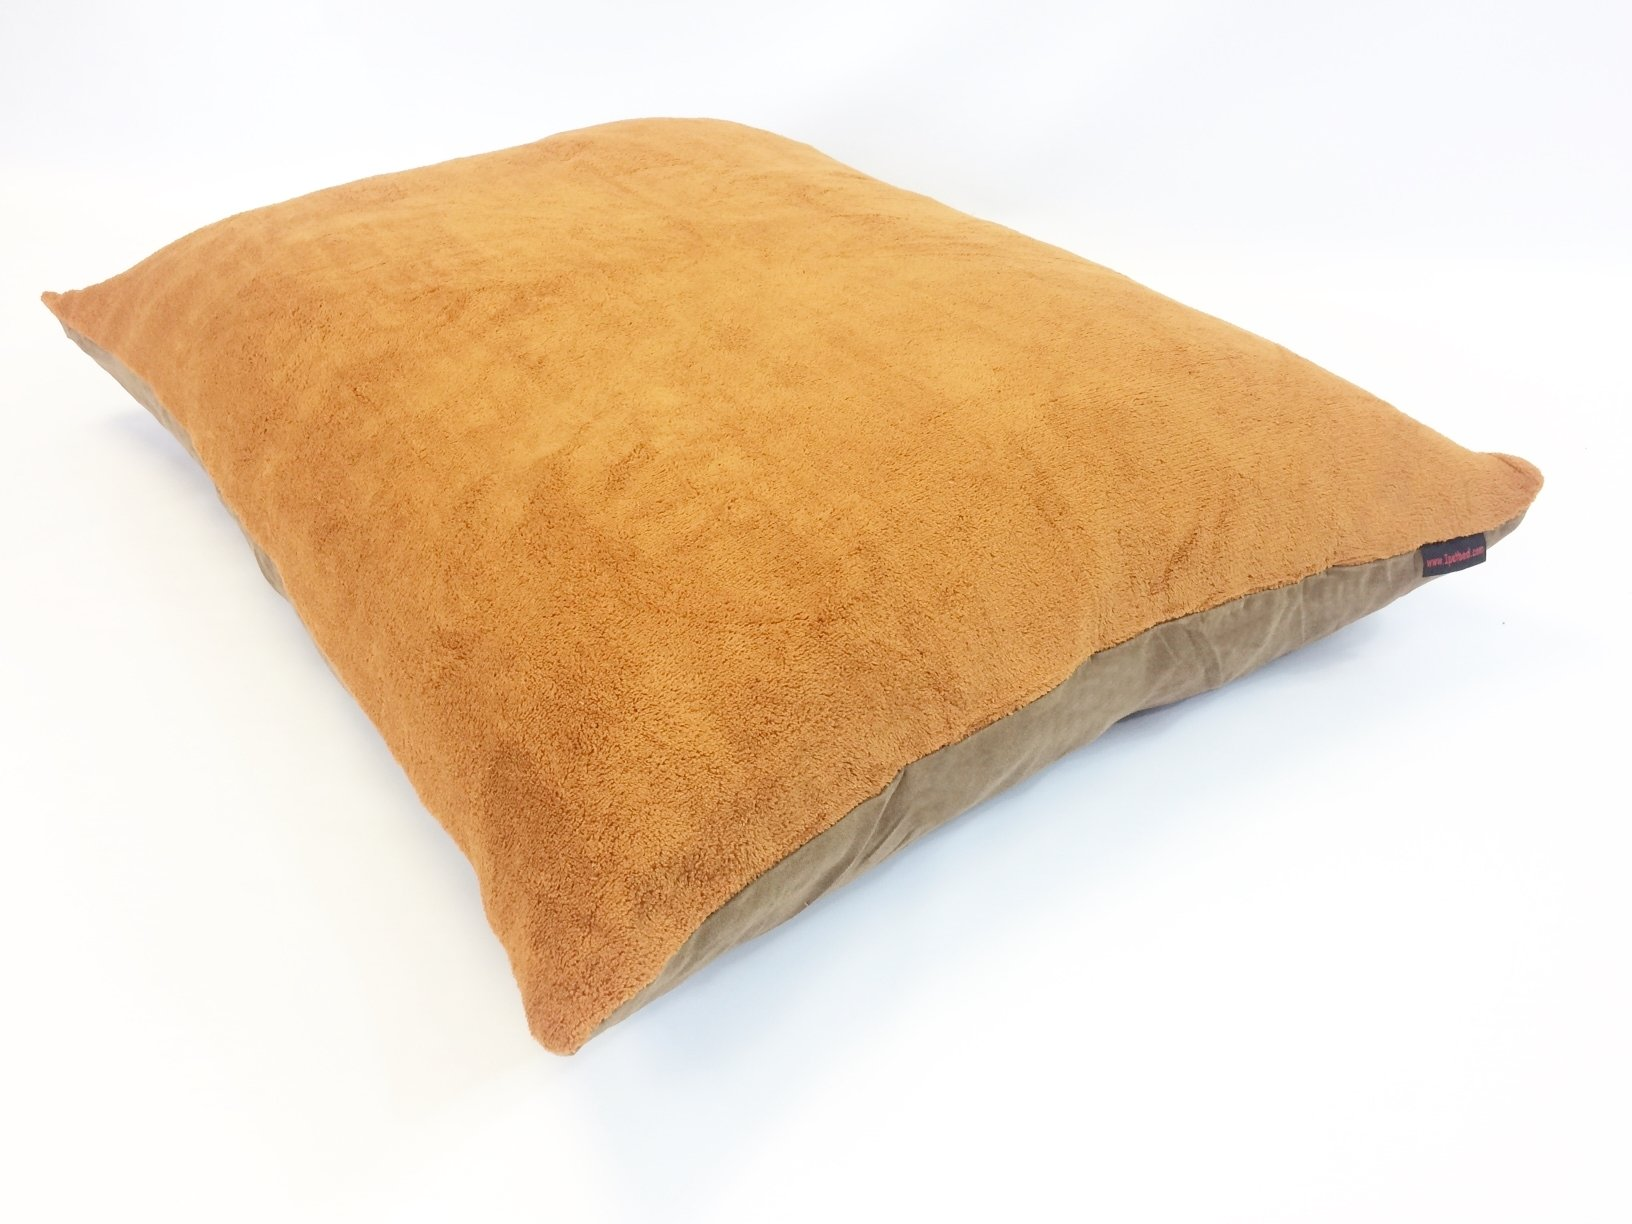 36''x29'' Medium Size MicroCushion High Density Memory Foam PolyFiber Waterproof Pet Pillow Bed with Removable Zippered Soft Fleece Sudan Brown / Brown Suede Cover for Small to Medium Dogs